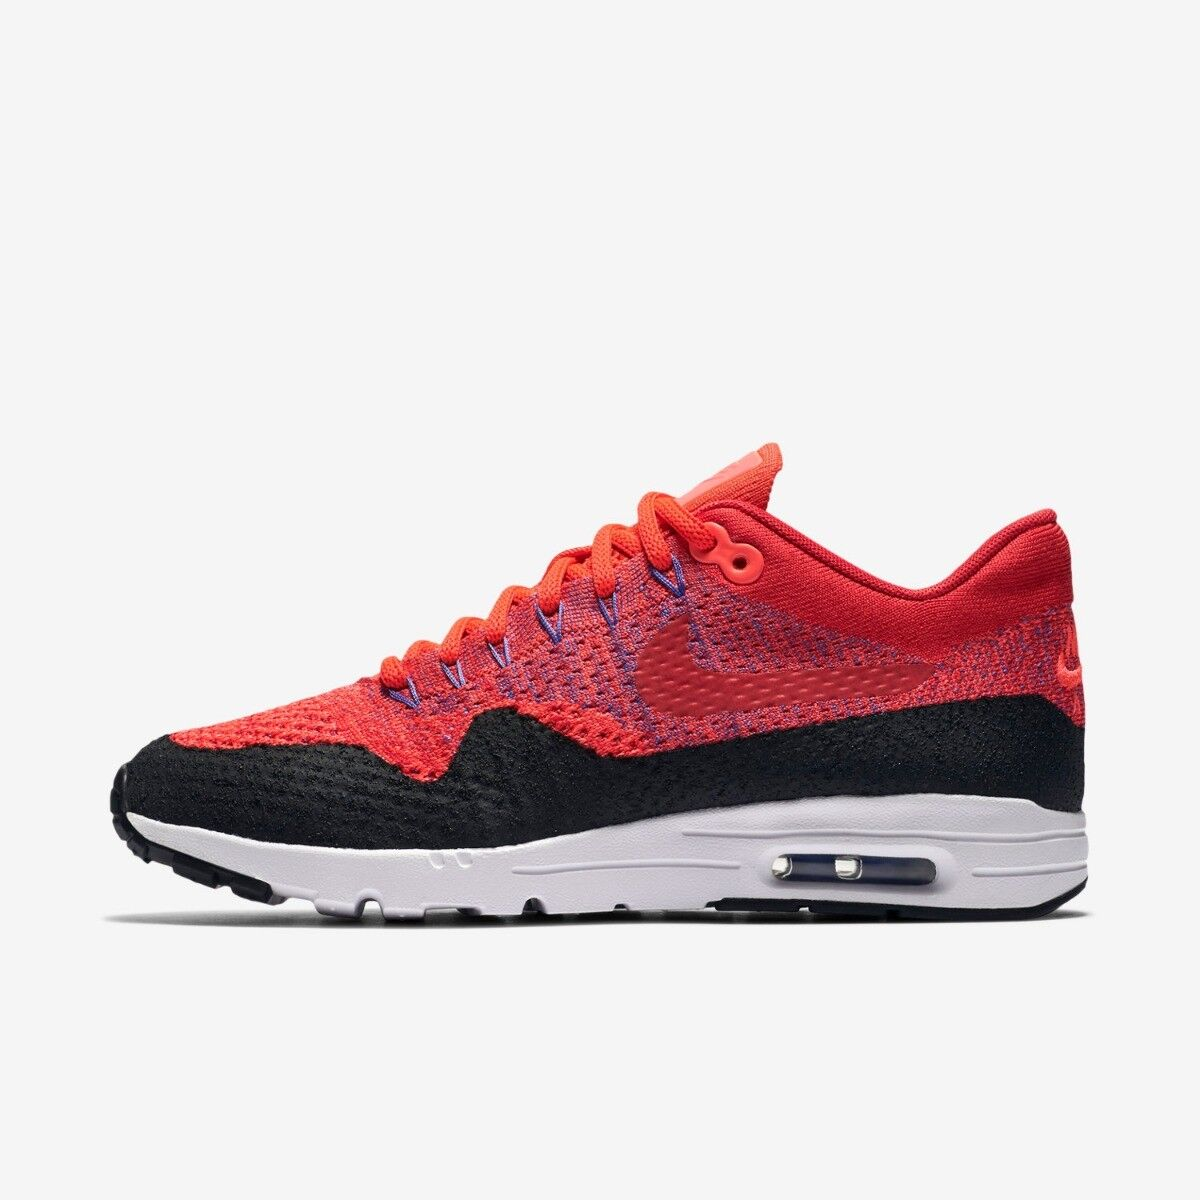 NIKE Femme AIR MAX 1 FLYKNITTaille 4 Chaussure - 6.5 fonctionnement TRAINER Chaussure 4 NEW rouge courir 5948ac